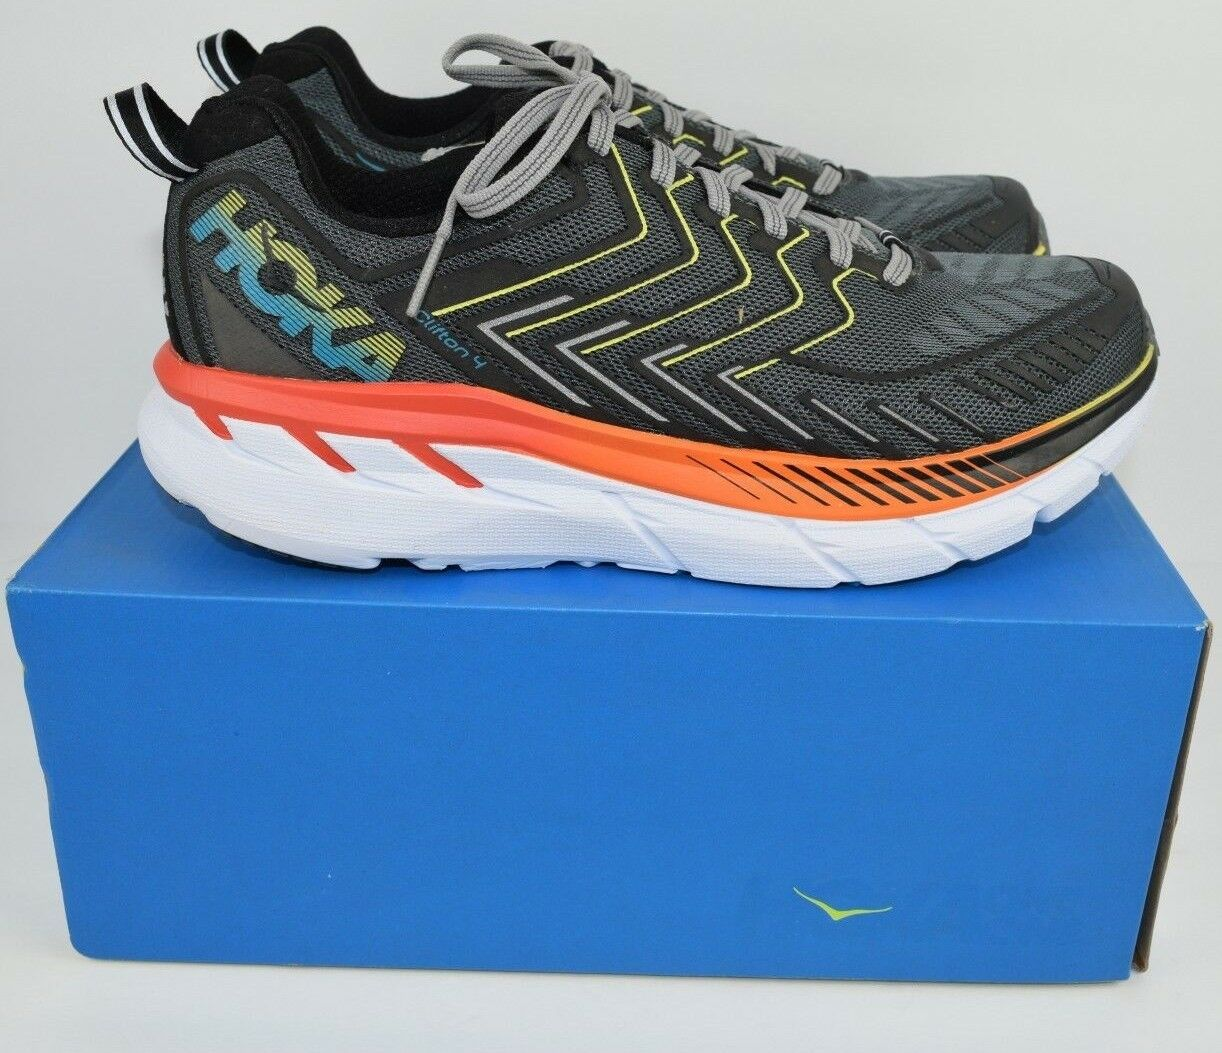 Hoka One One Clifton 4 Men's Running shoes Castlerock bluee 1014757 Mens Size 7.5